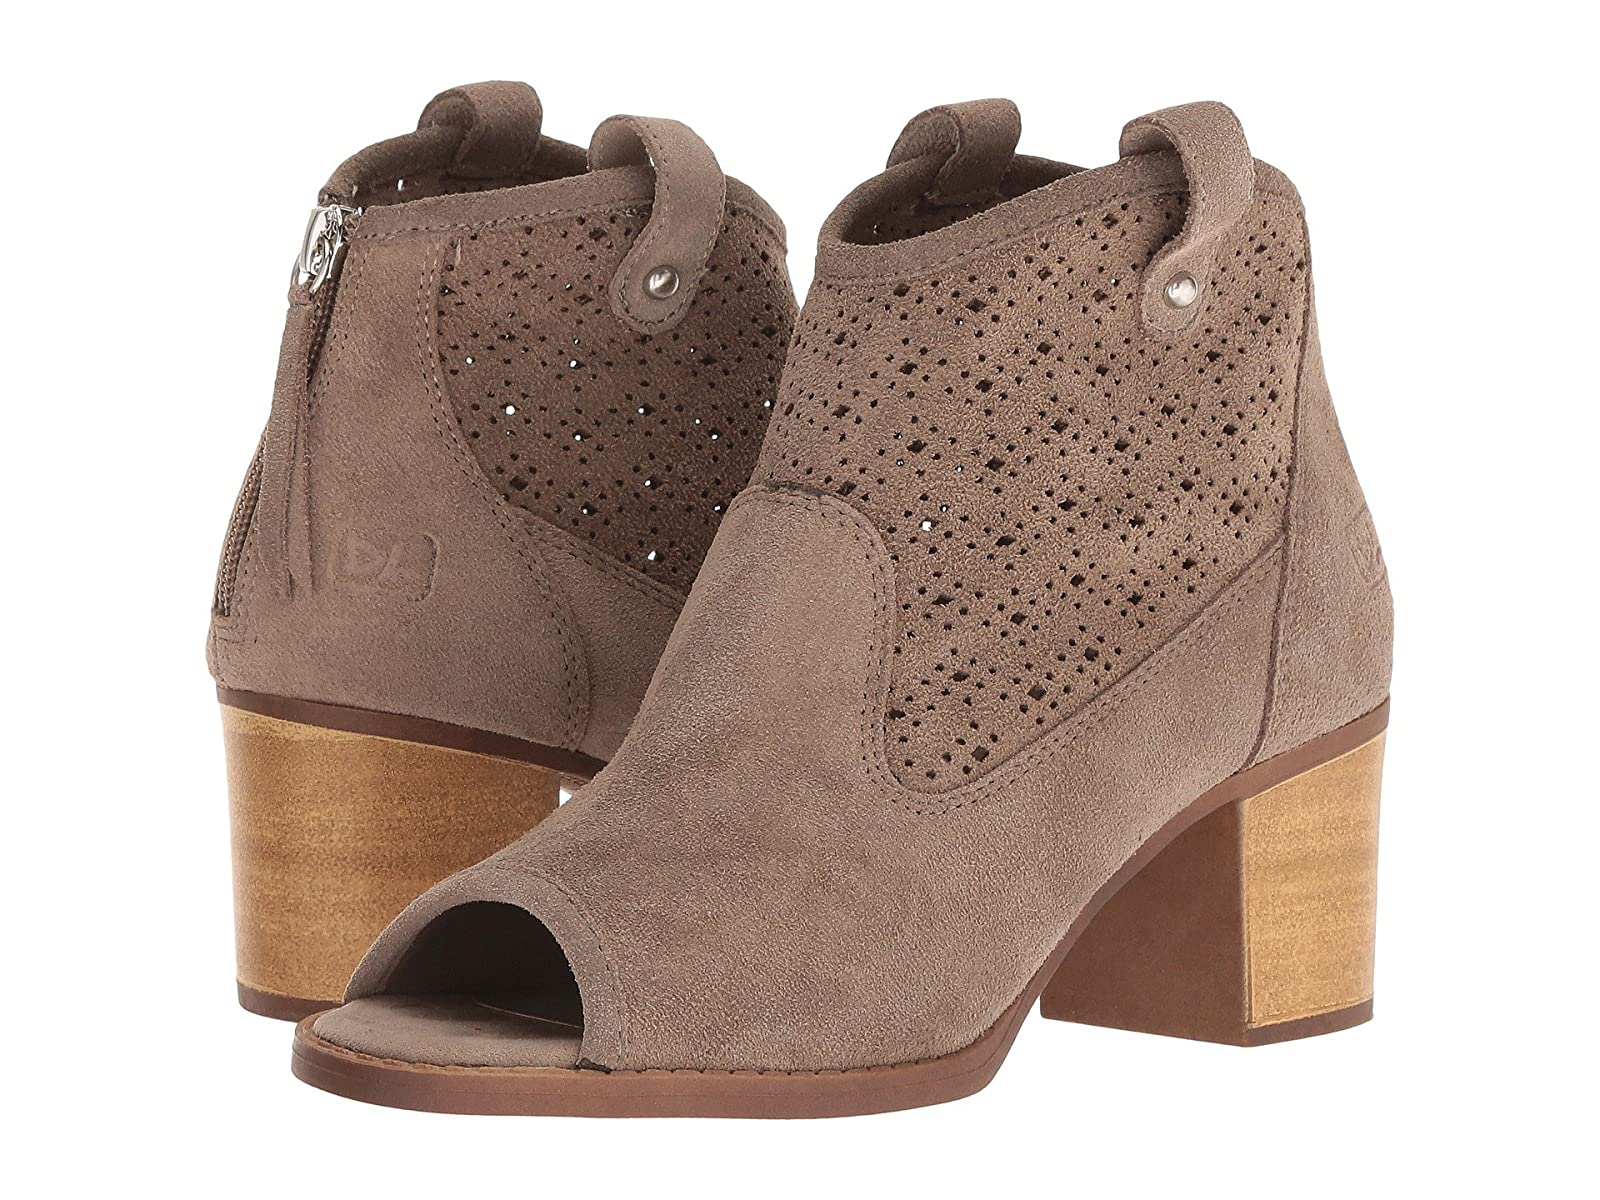 Dirty Laundry Trixie Peep Toe BootieAffordable and distinctive shoes